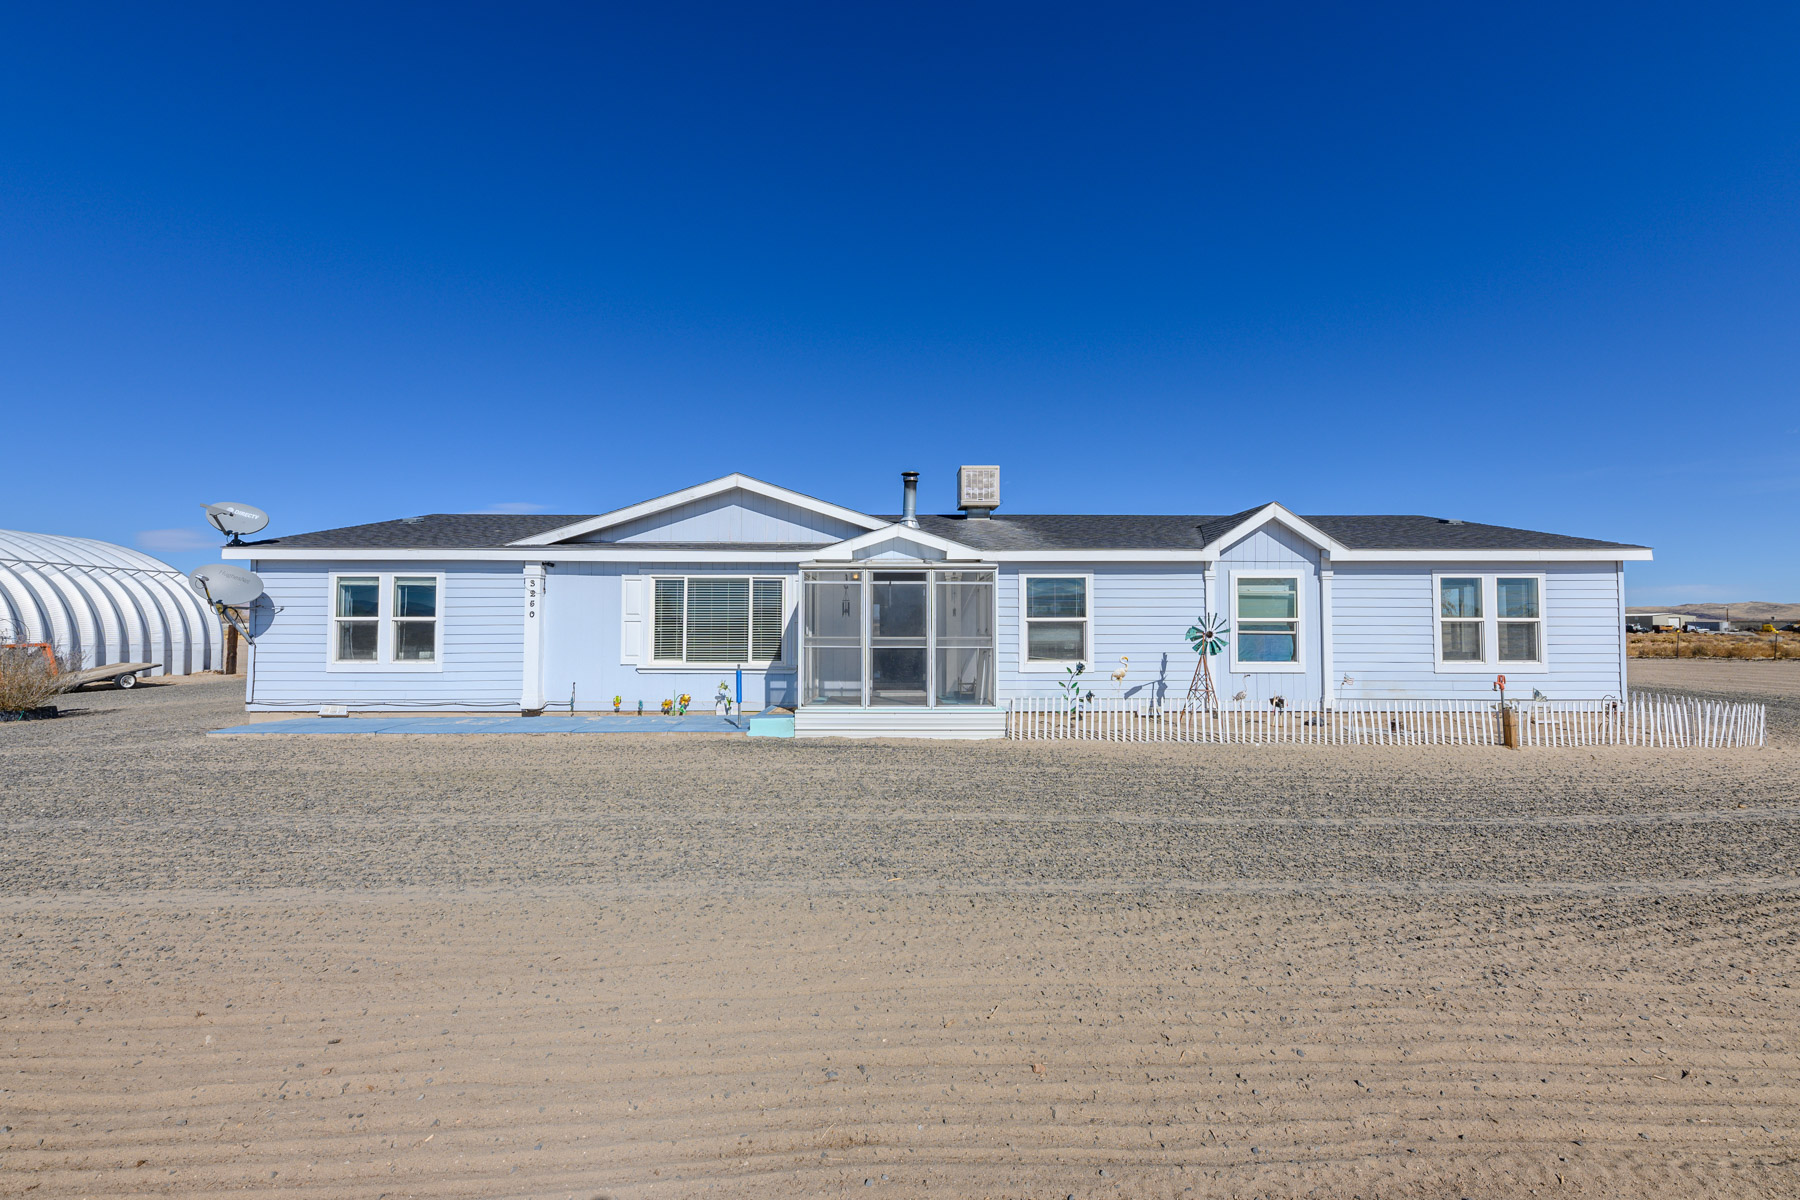 Additional photo for property listing at 3250 East 4th Street, Silver Springs, NV 89429 3250 E 4th Street Silver Springs, Nevada 89429 Estados Unidos